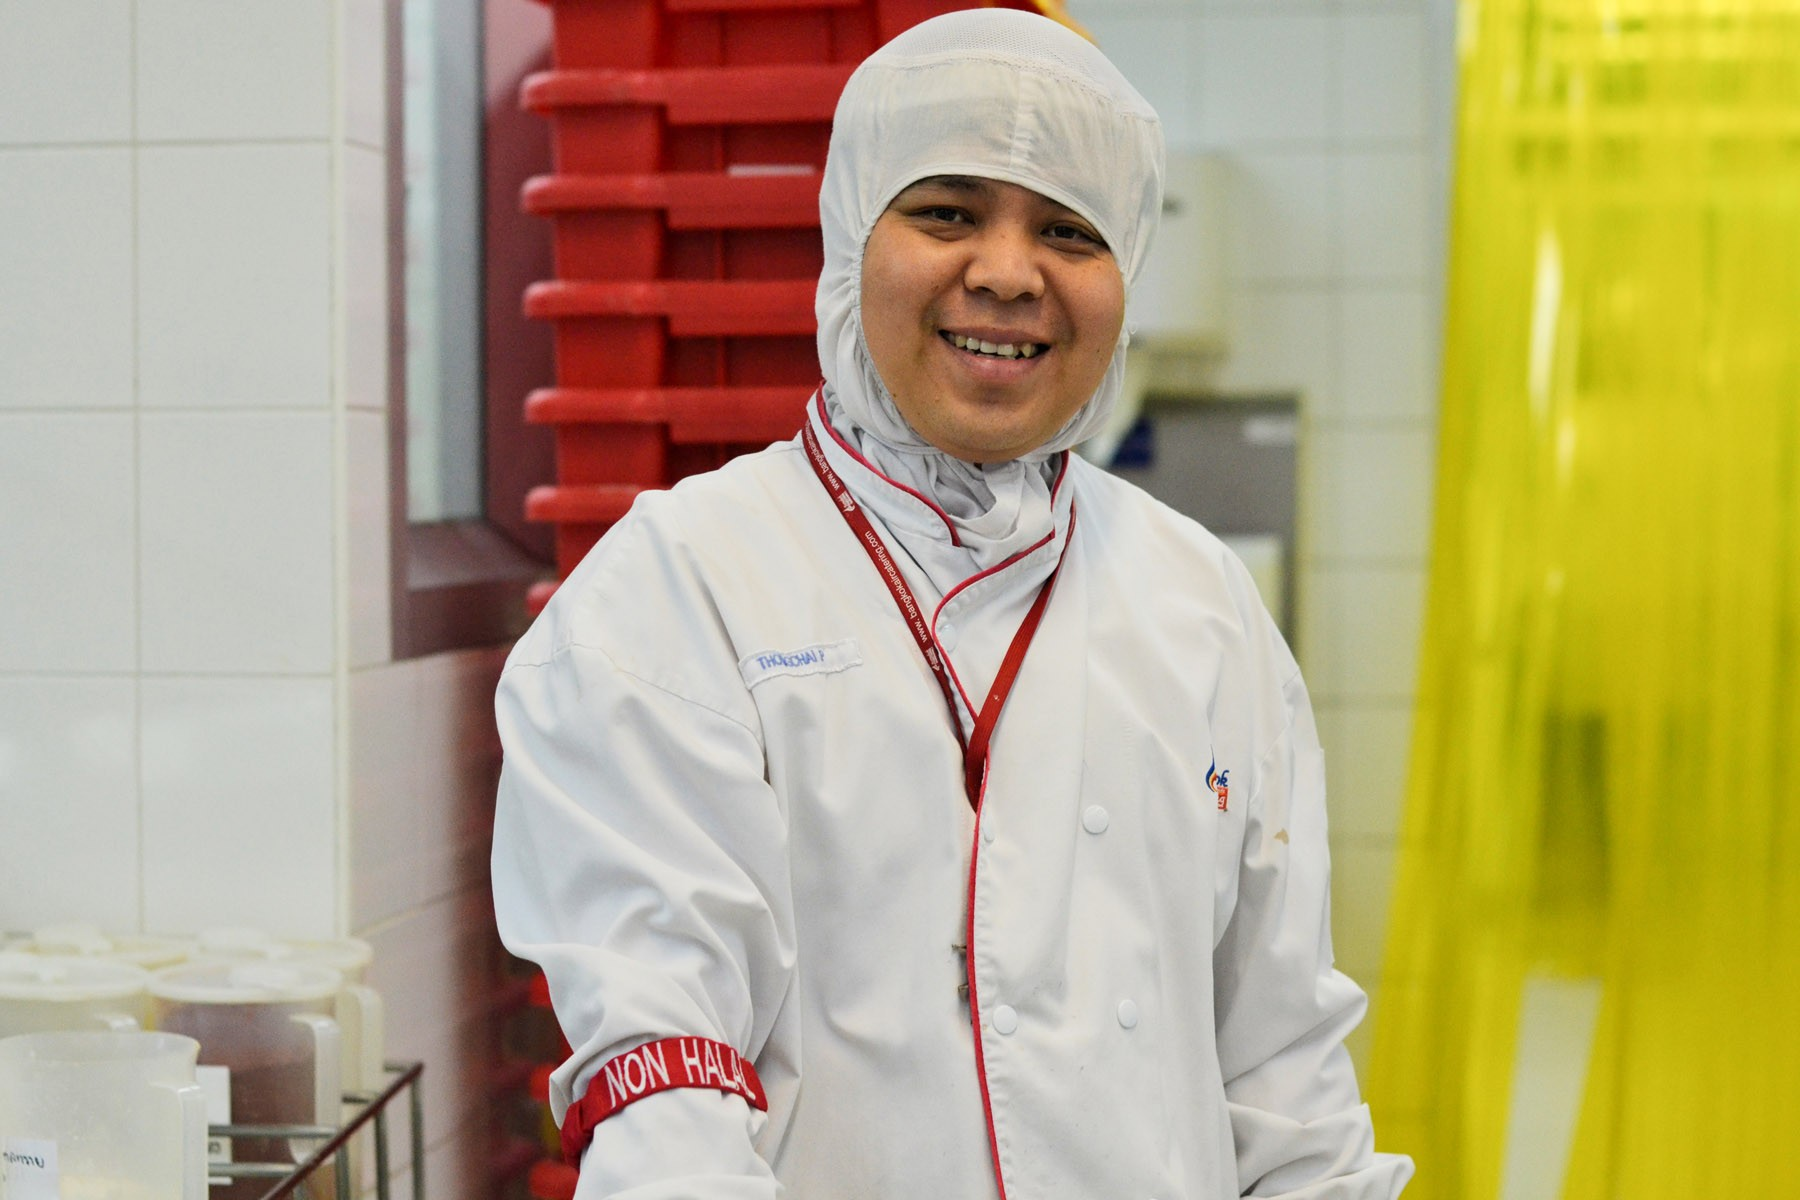 An employee presents his non halal arm band, one way the factory makes sure all halal foods are handled properly. -1